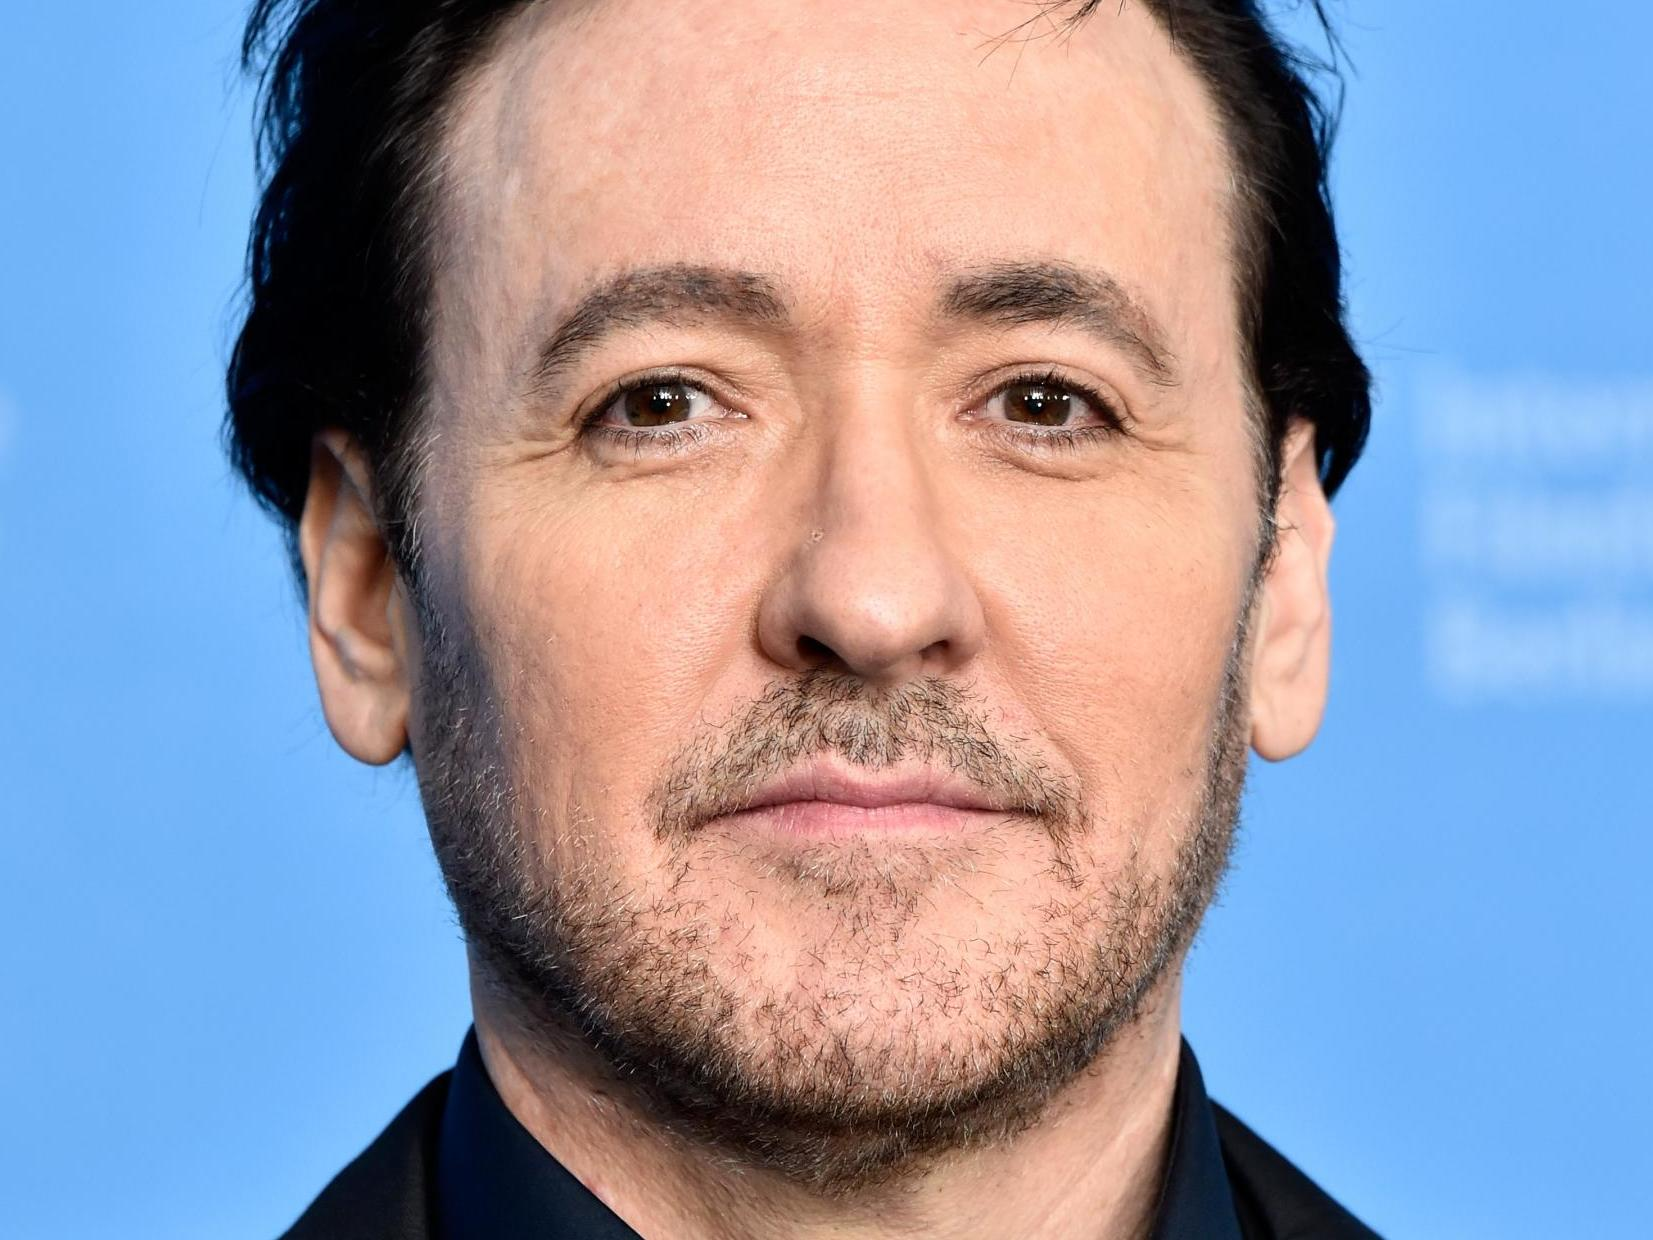 John Cusack attacked by police and 'hit by pepper spray' while filming Chicago protests